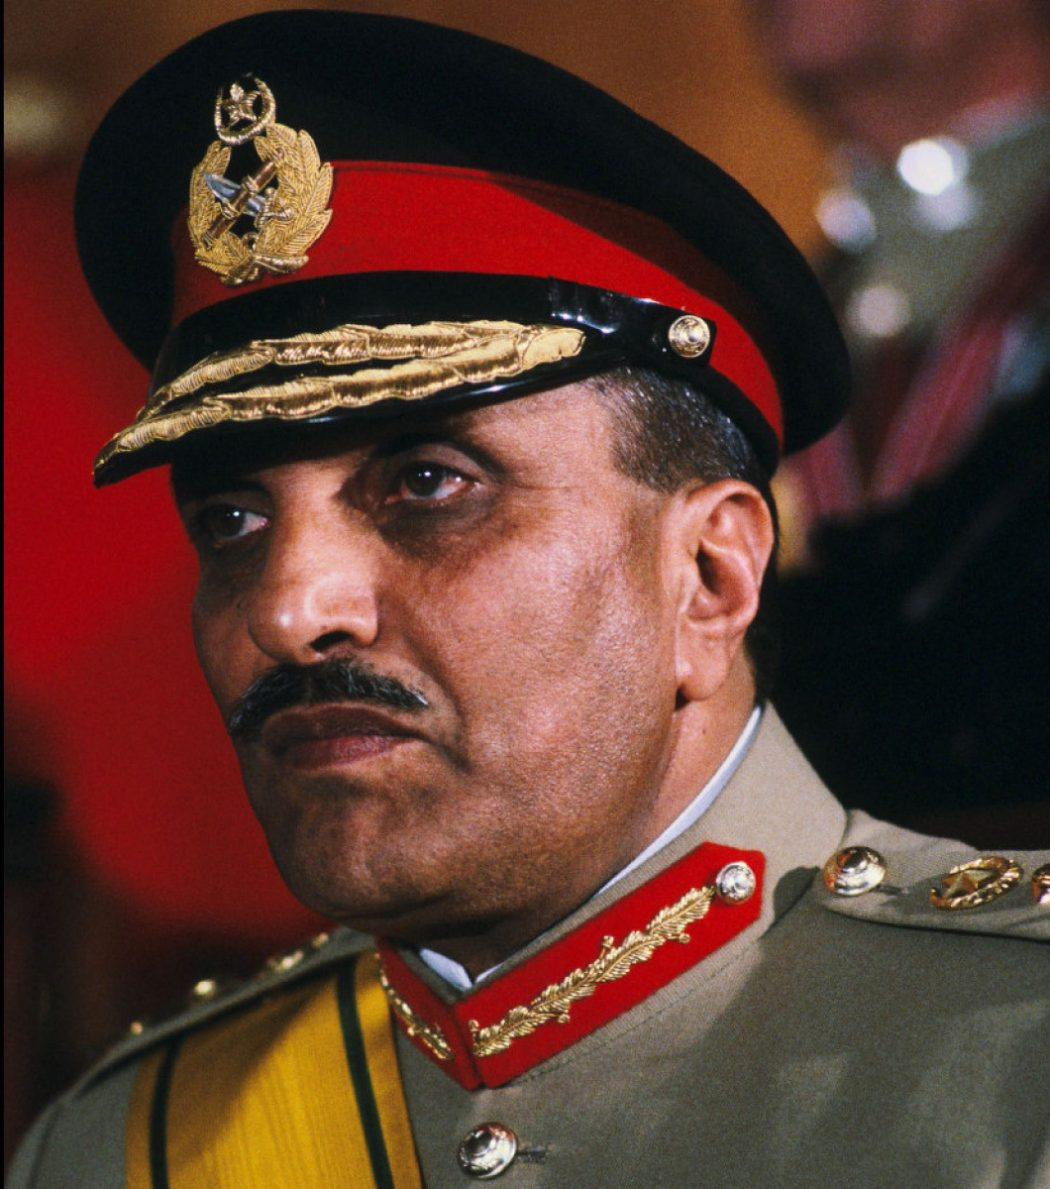 zia_ulhaq Top 10 Most Famous People Who Died in Plane Crashes